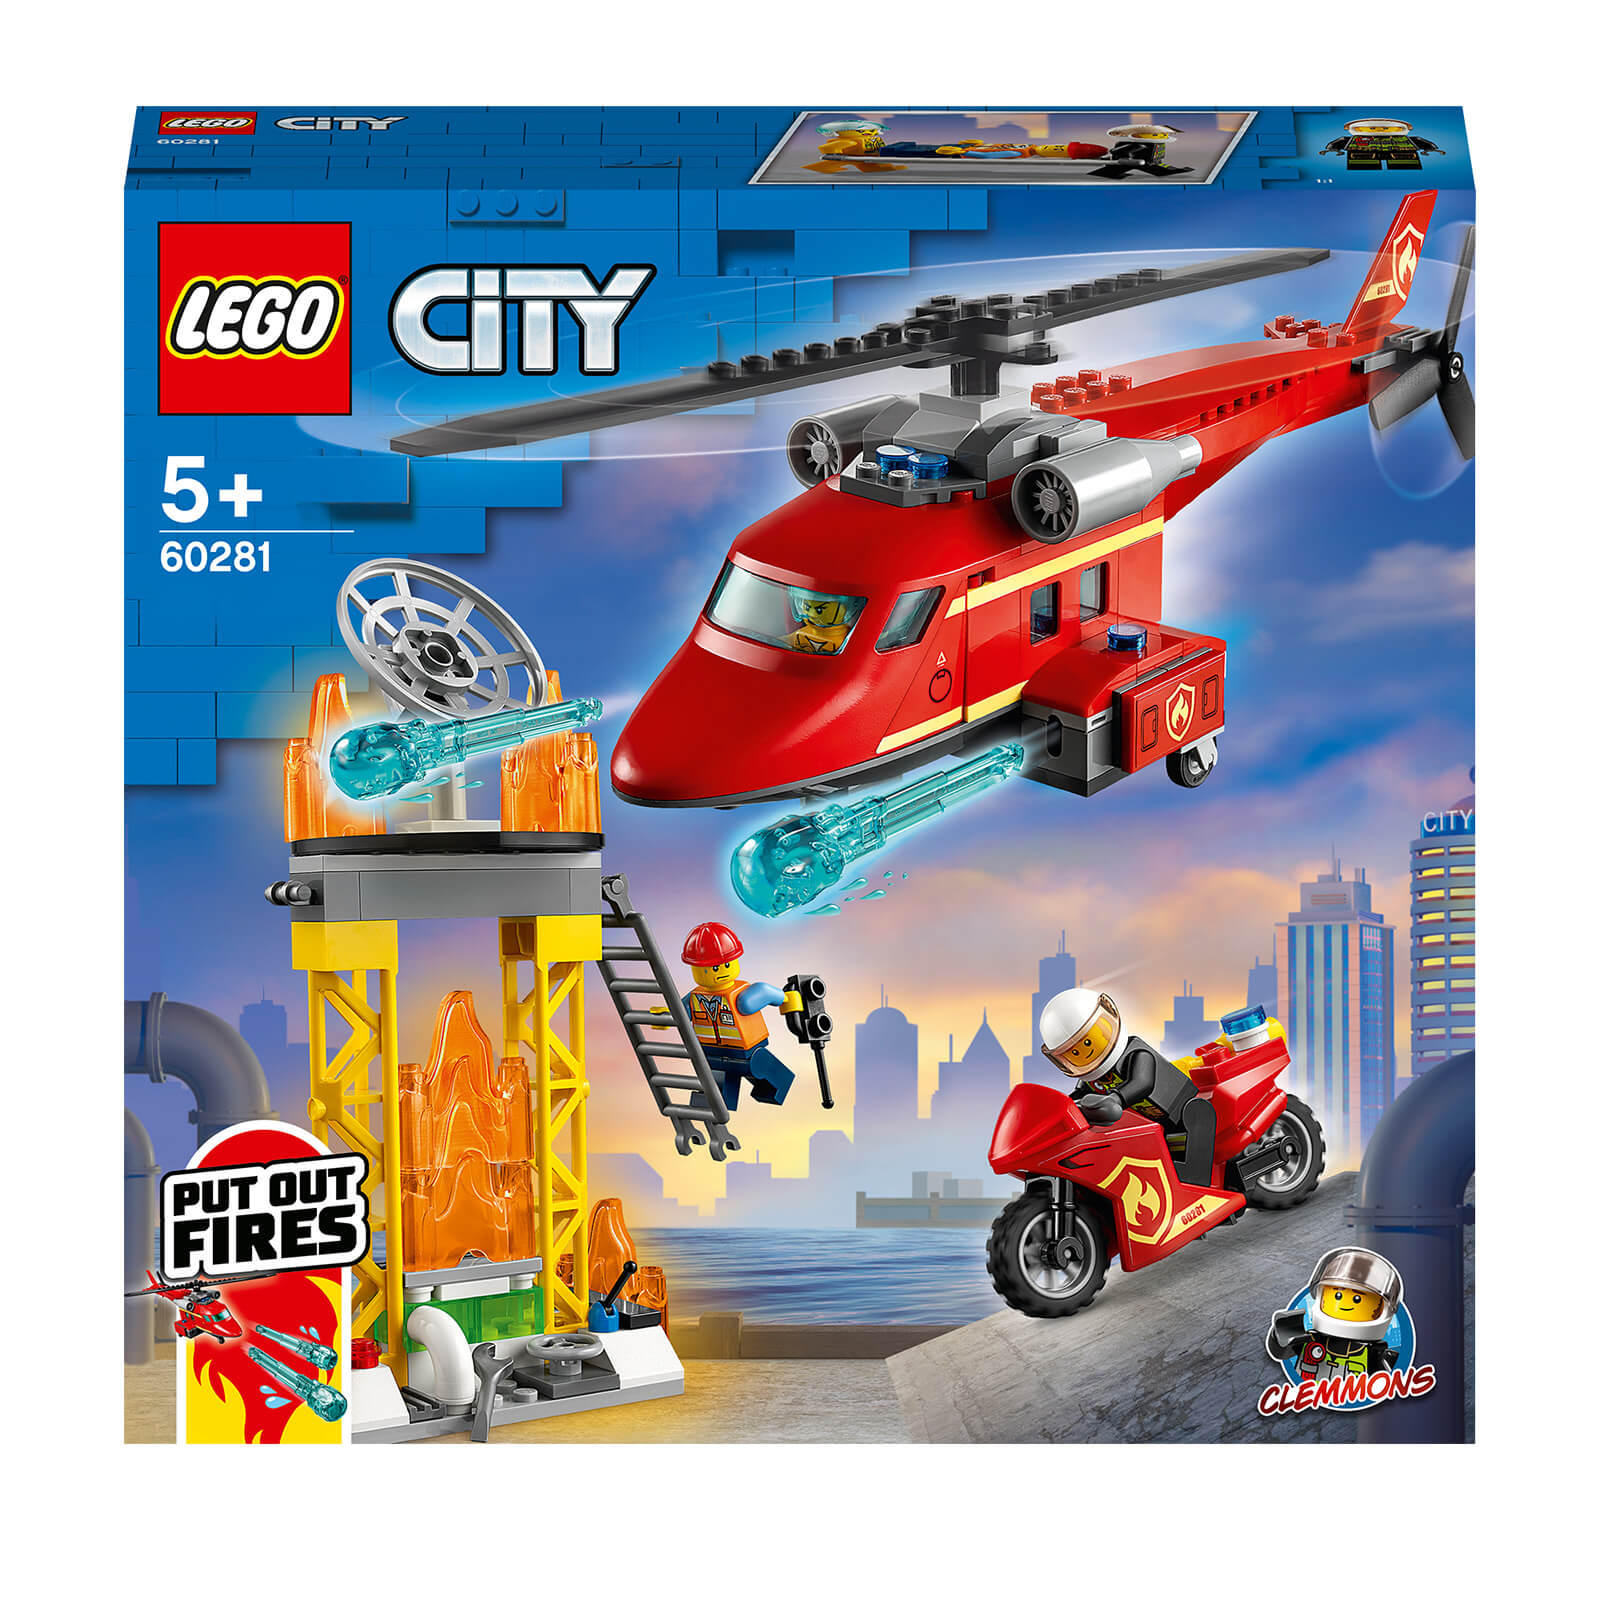 Image of LEGO City Fire Rescue Helicopter - 60281